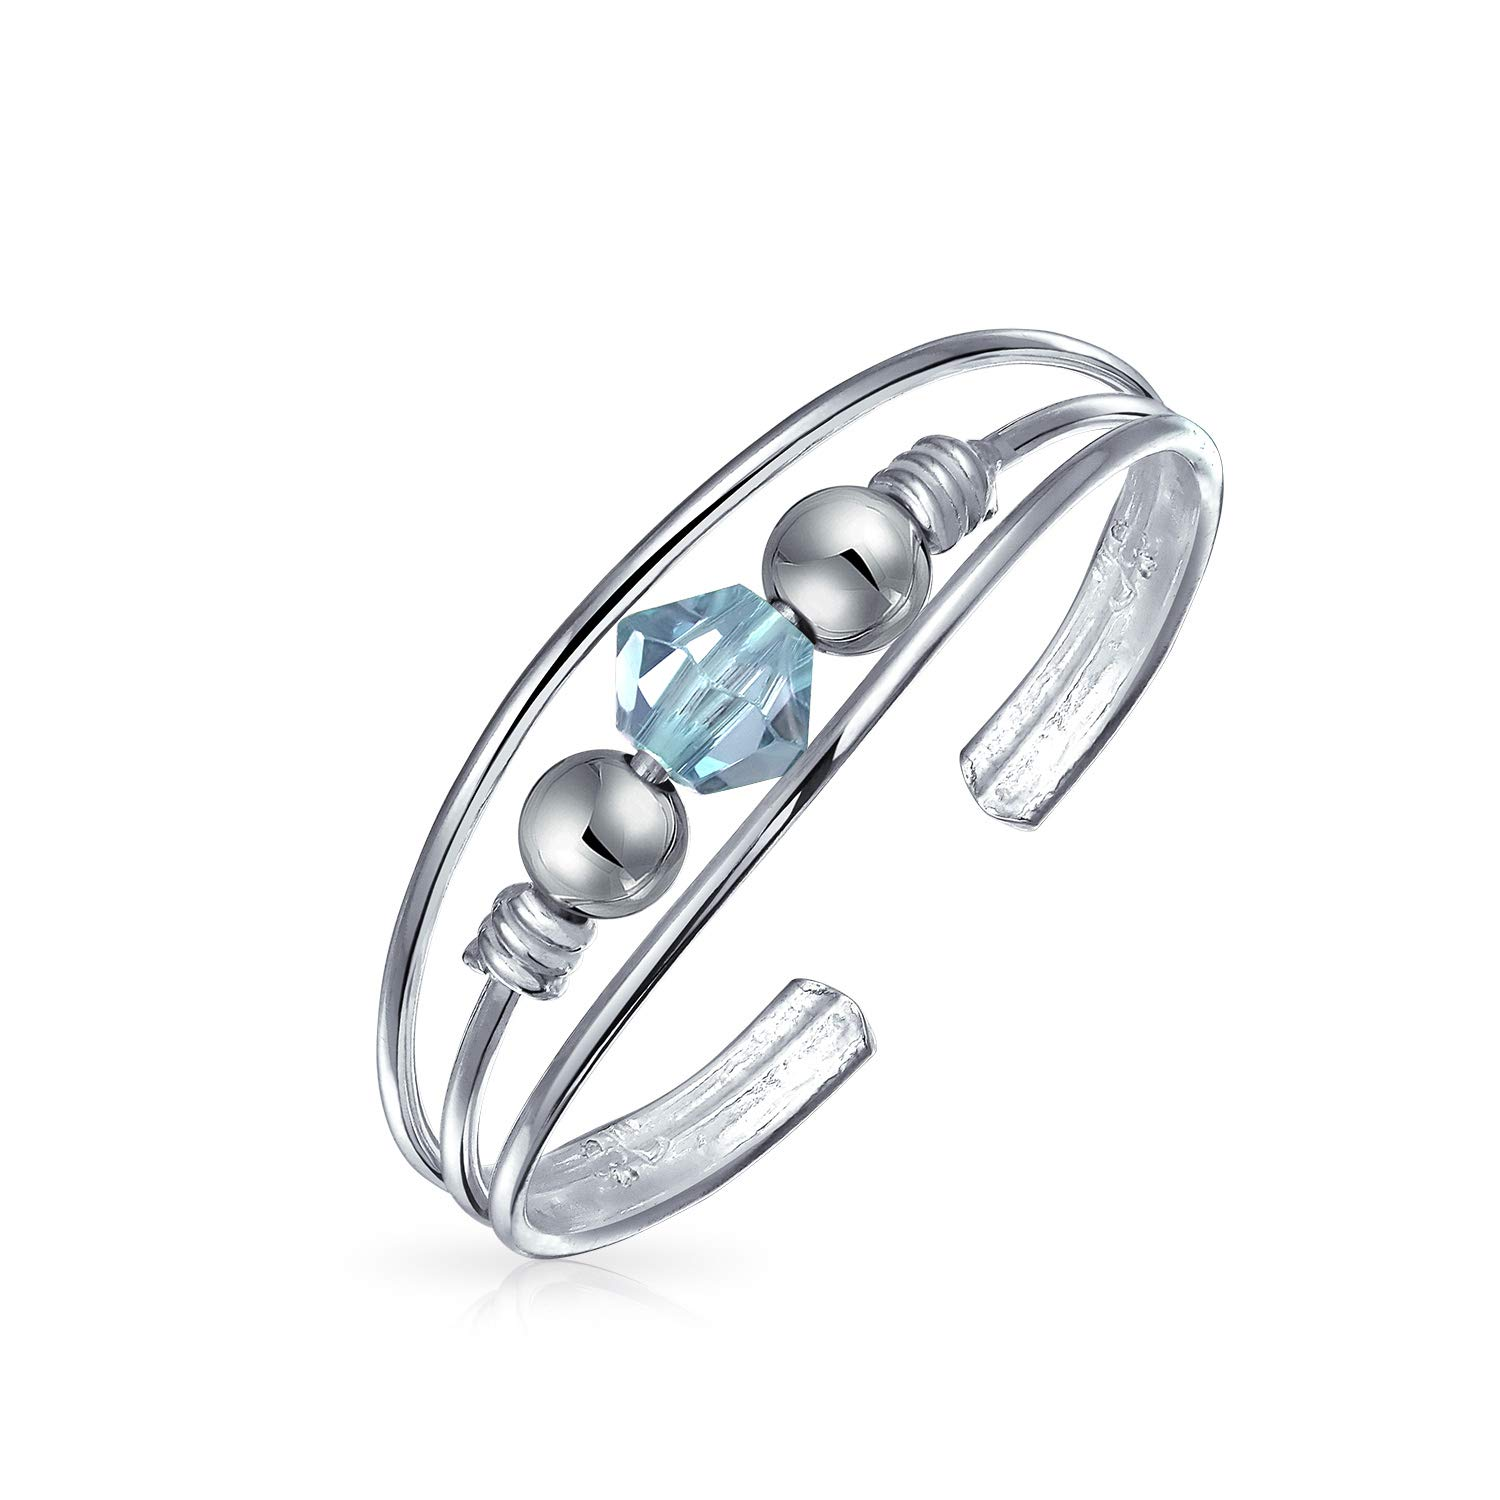 Wedding Bands Jewelry & Accessories High Quality Fashion 925 Sterling Silver Sure Colourful Rhinestone Adjustable Size Ring For Women